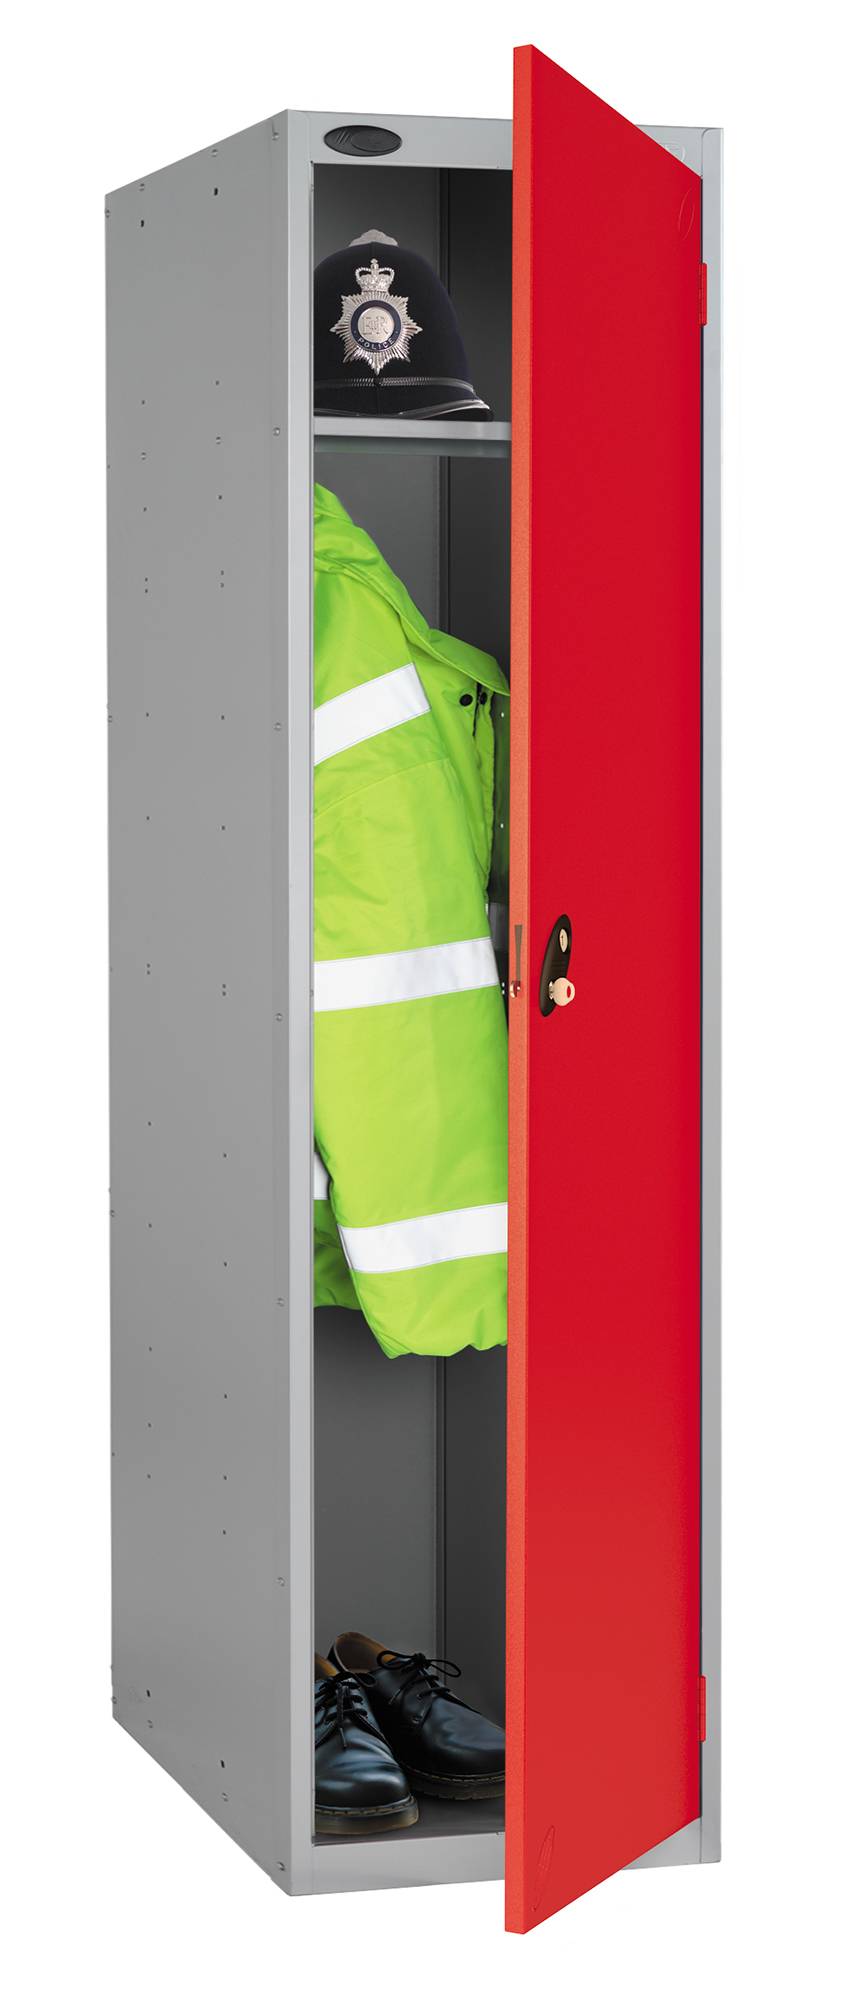 Probe high capacity police locker in red colour is designed to accommodate personal body armor